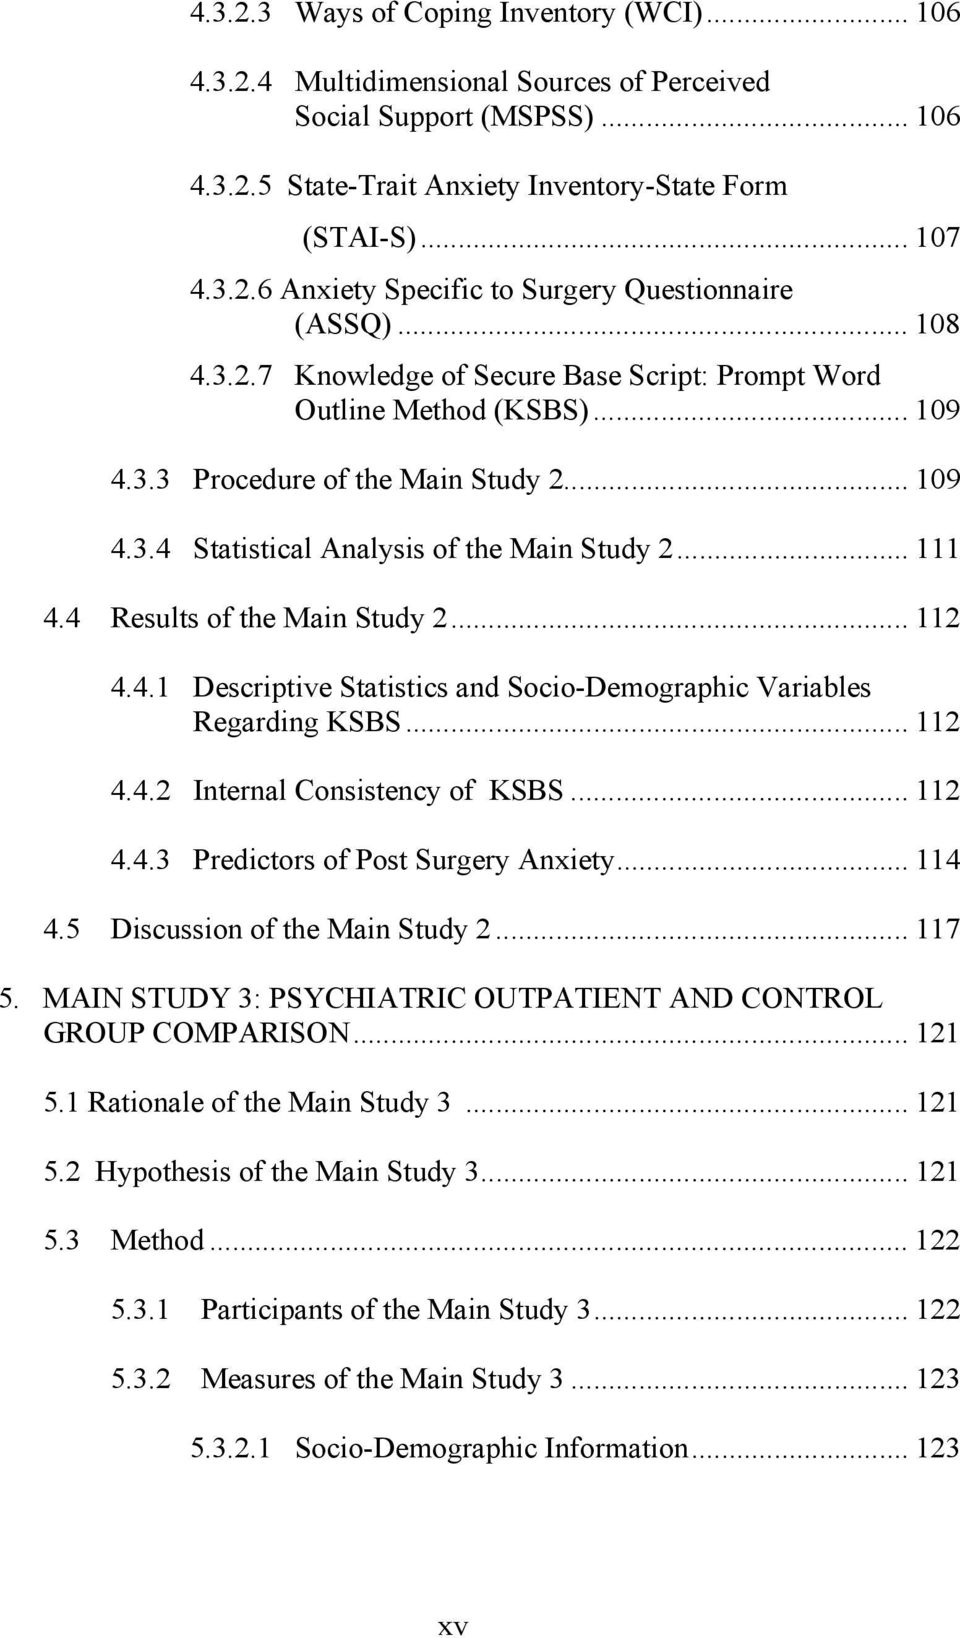 4 Results of the Main Study 2... 112 4.4.1 Descriptive Statistics and Socio-Demographic Variables Regarding KSBS... 112 4.4.2 Internal Consistency of KSBS... 112 4.4.3 Predictors of Post Surgery Anxiety.